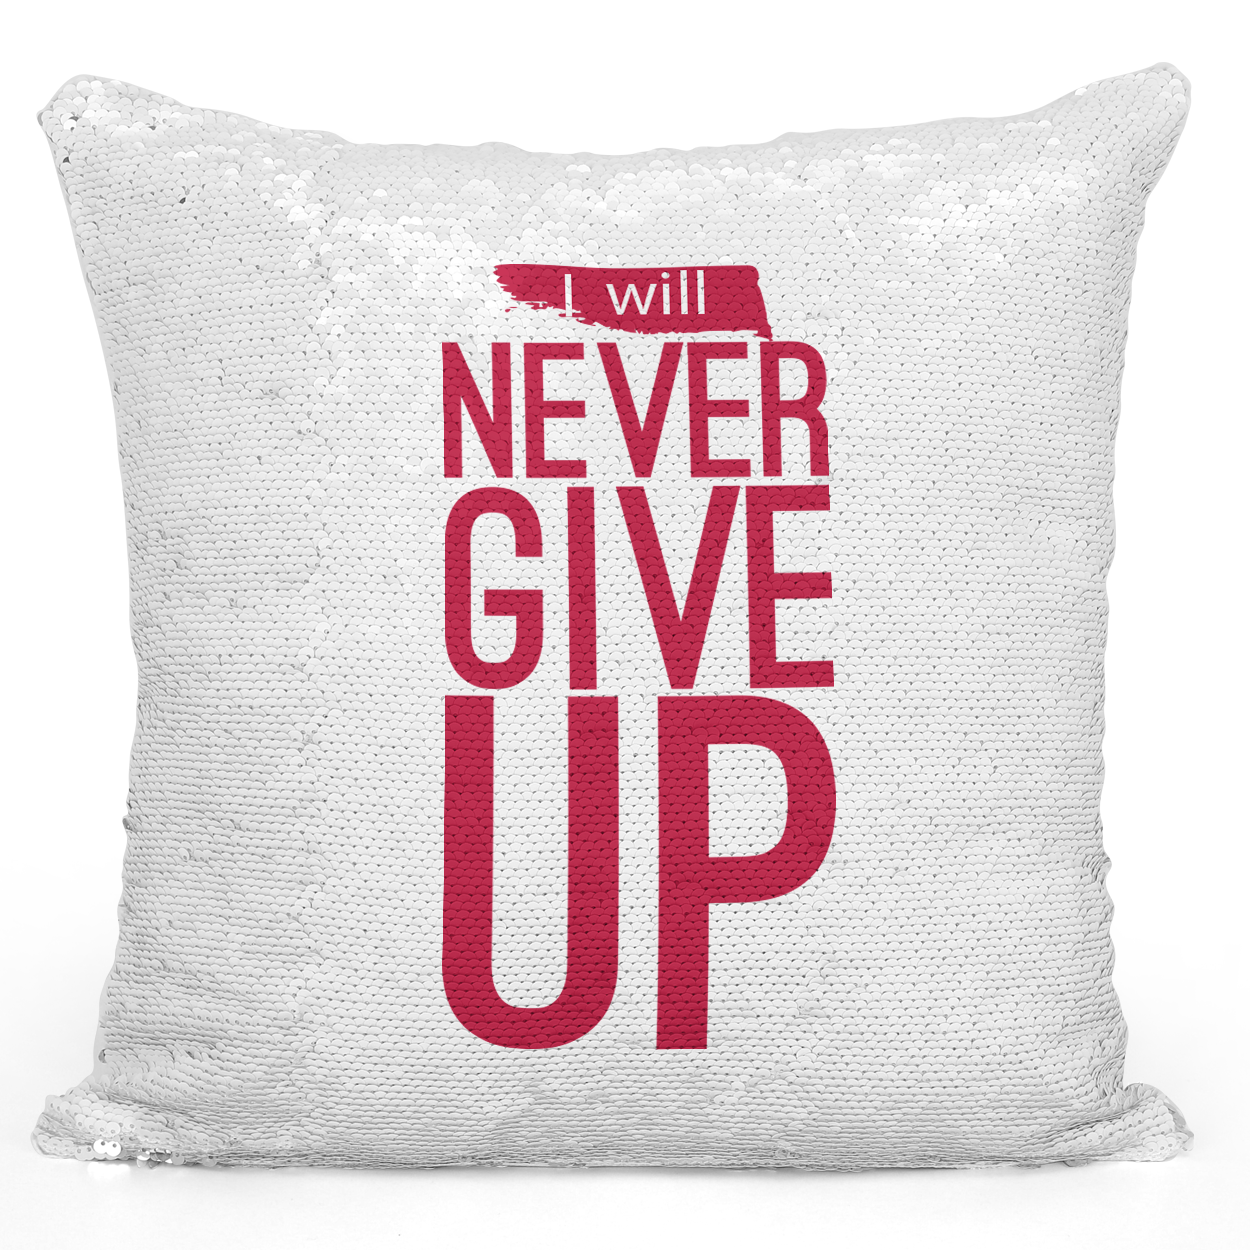 Sequin Pillow Magic Mermaid Throw Pillow i Will Never Give Up Motivational Quote Red Pillow - Premium 100% Polyester 16 x 16 inch Square Livingroom Sofa Couch Pillow Loud Universe